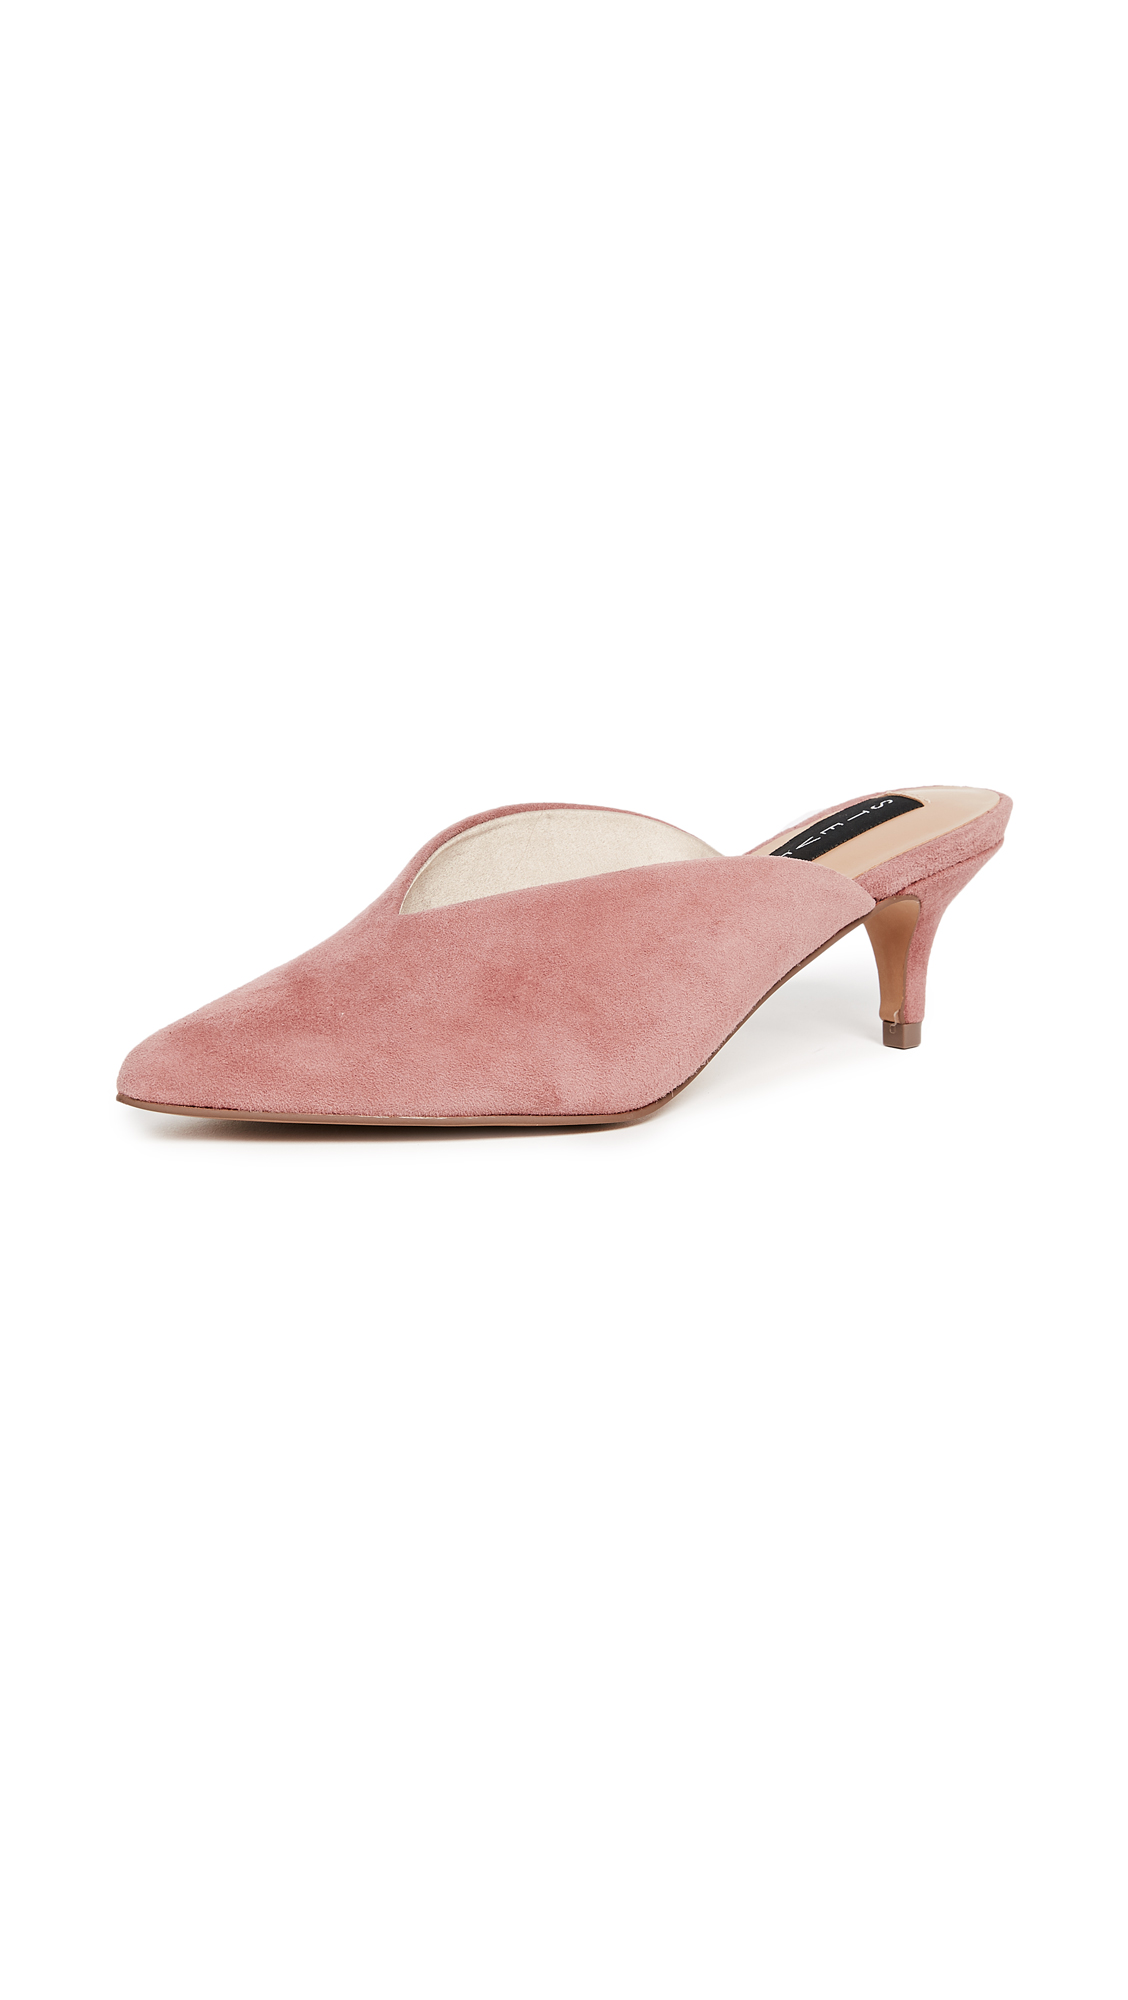 Steven Ainsley Point Toe Mules - Mauve